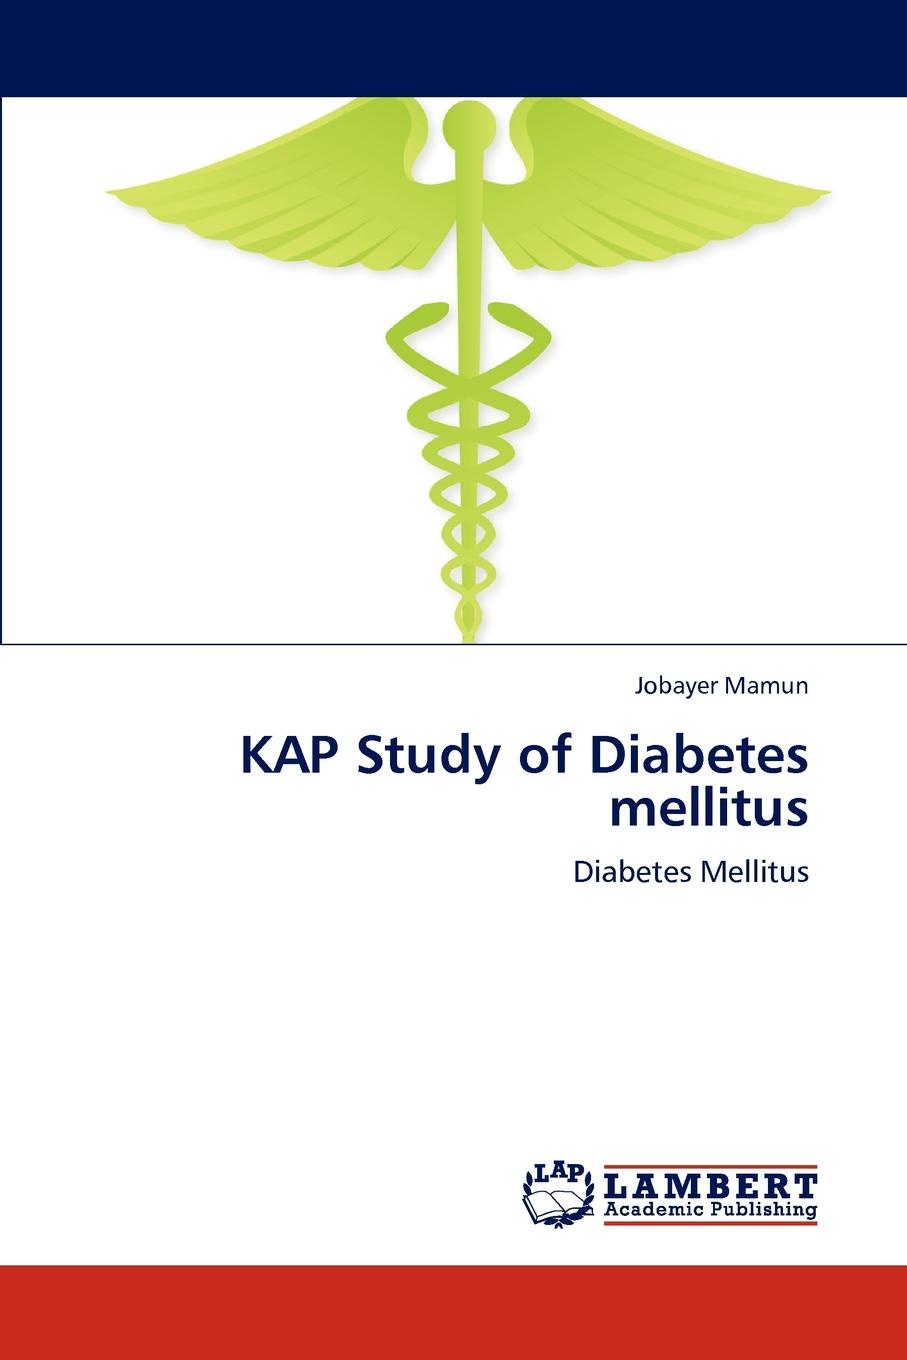 купить Jobayer Mamun Kap Study of Diabetes Mellitus по цене 8639 рублей